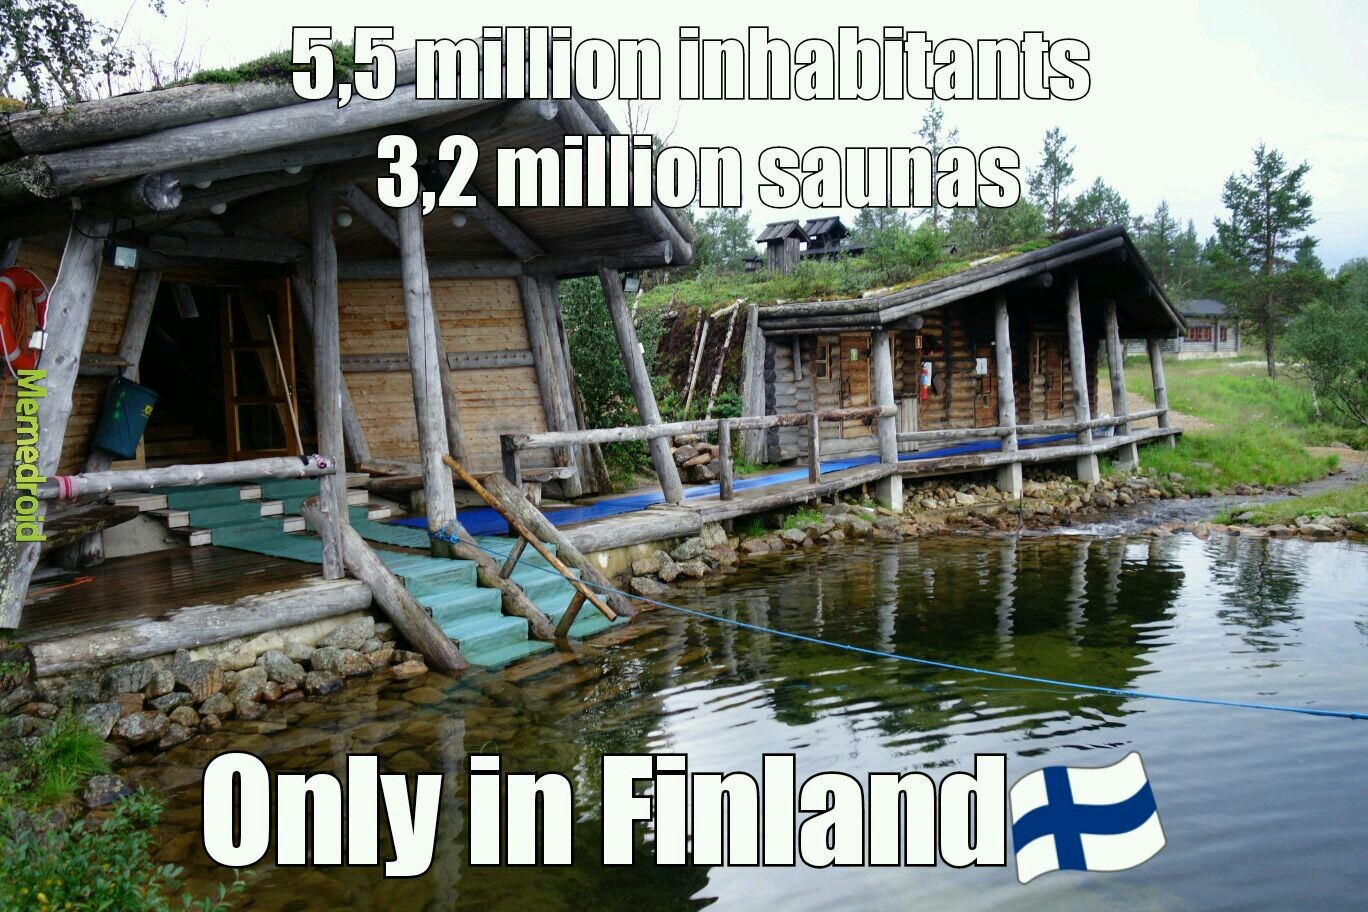 Saunas everywhere <3 - meme